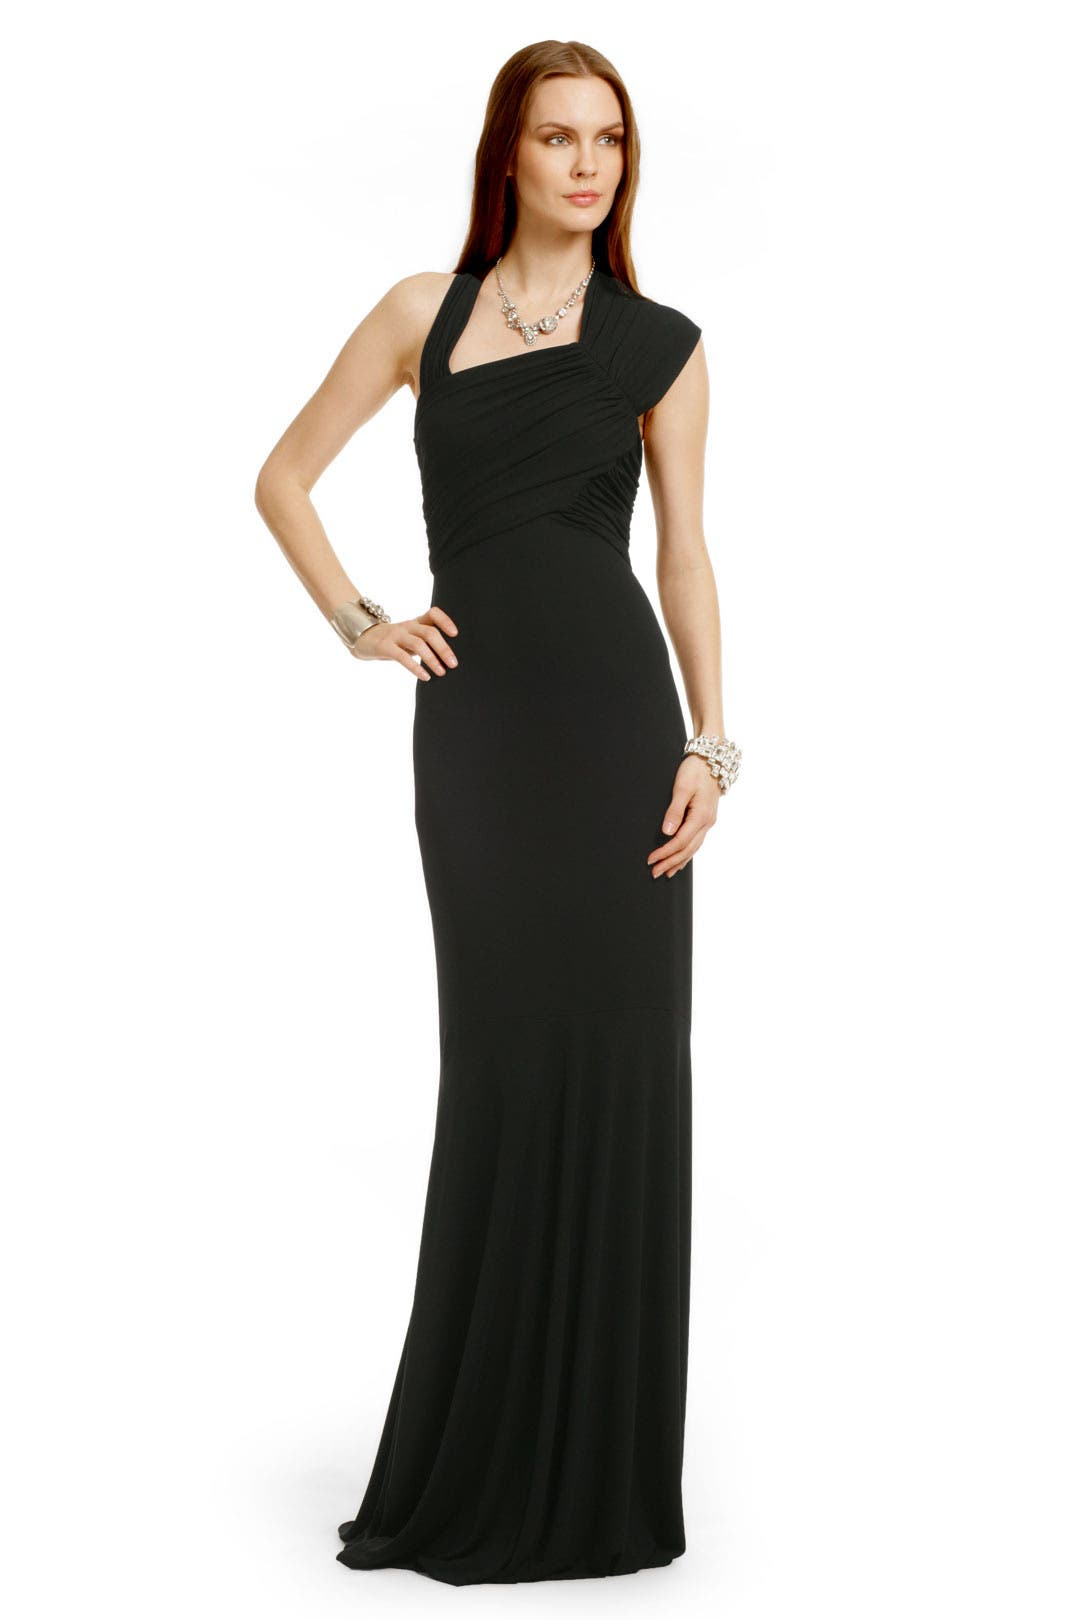 Beauty in the Night Gown by Narciso Rodriguez